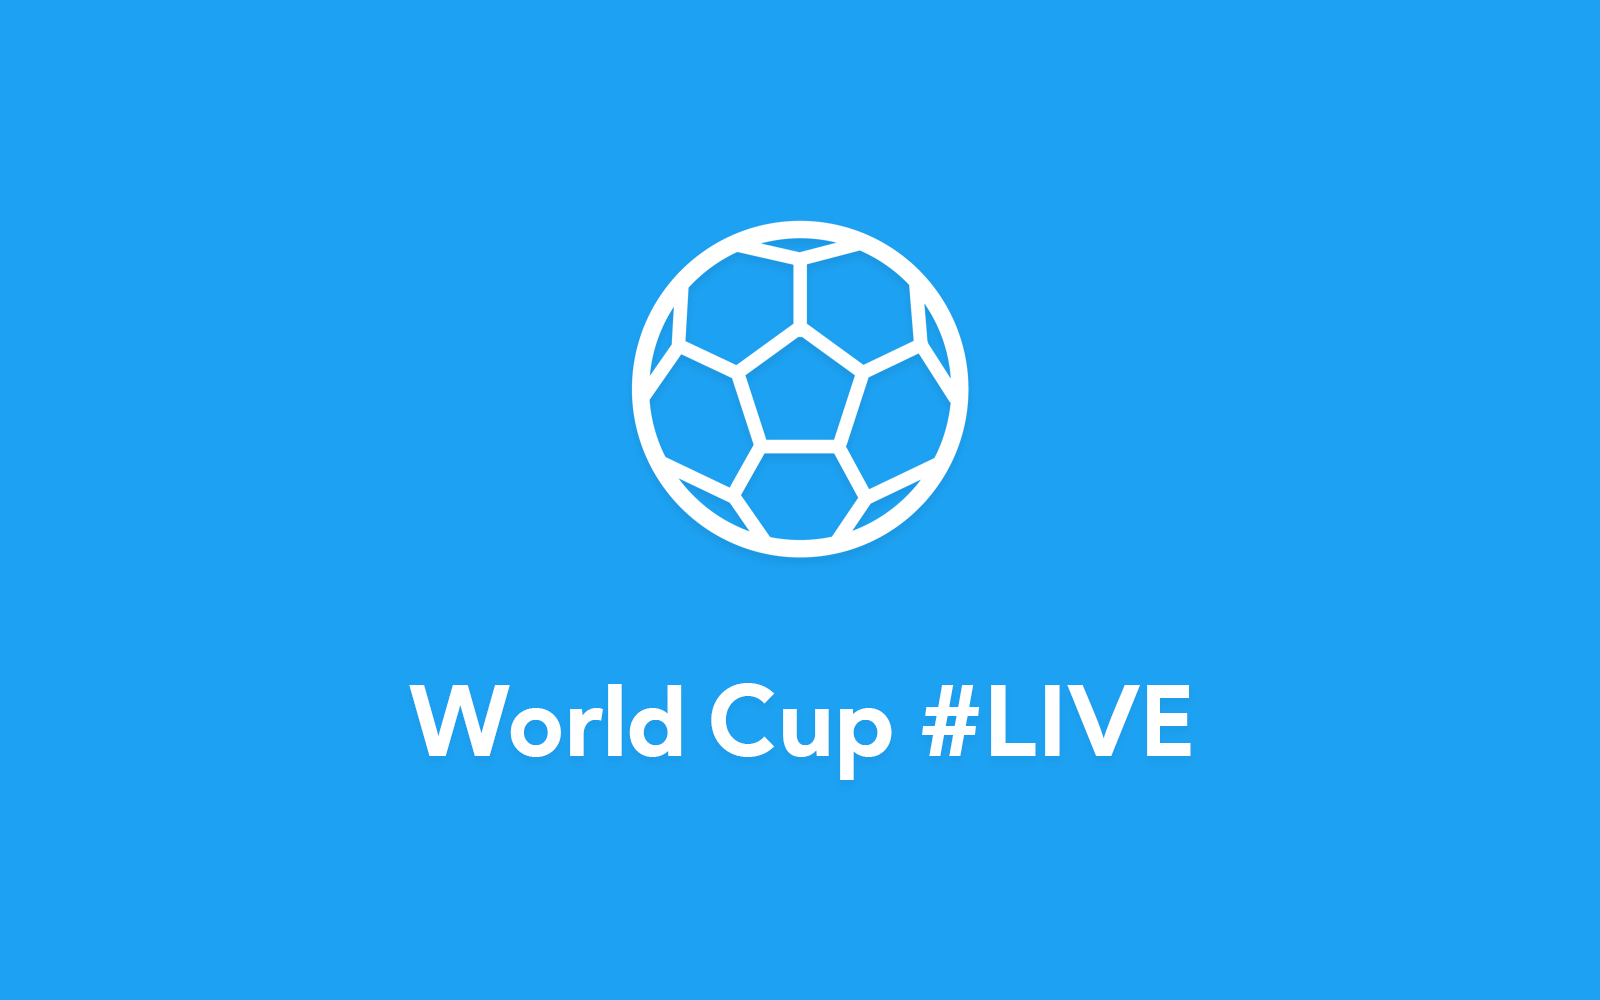 Soccerball icon on Twitter blue background